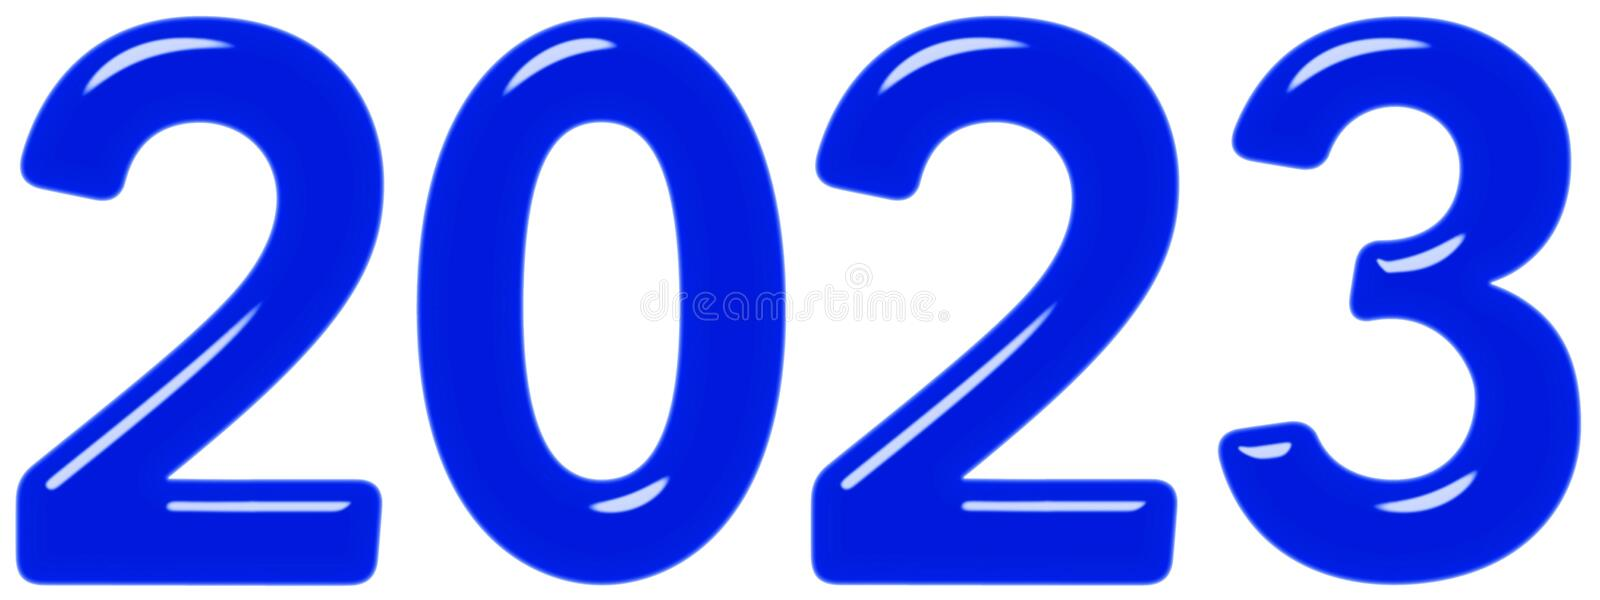 Inscription 2023 from blue glass or plastic, isolated on white background, 3d render royalty free illustration